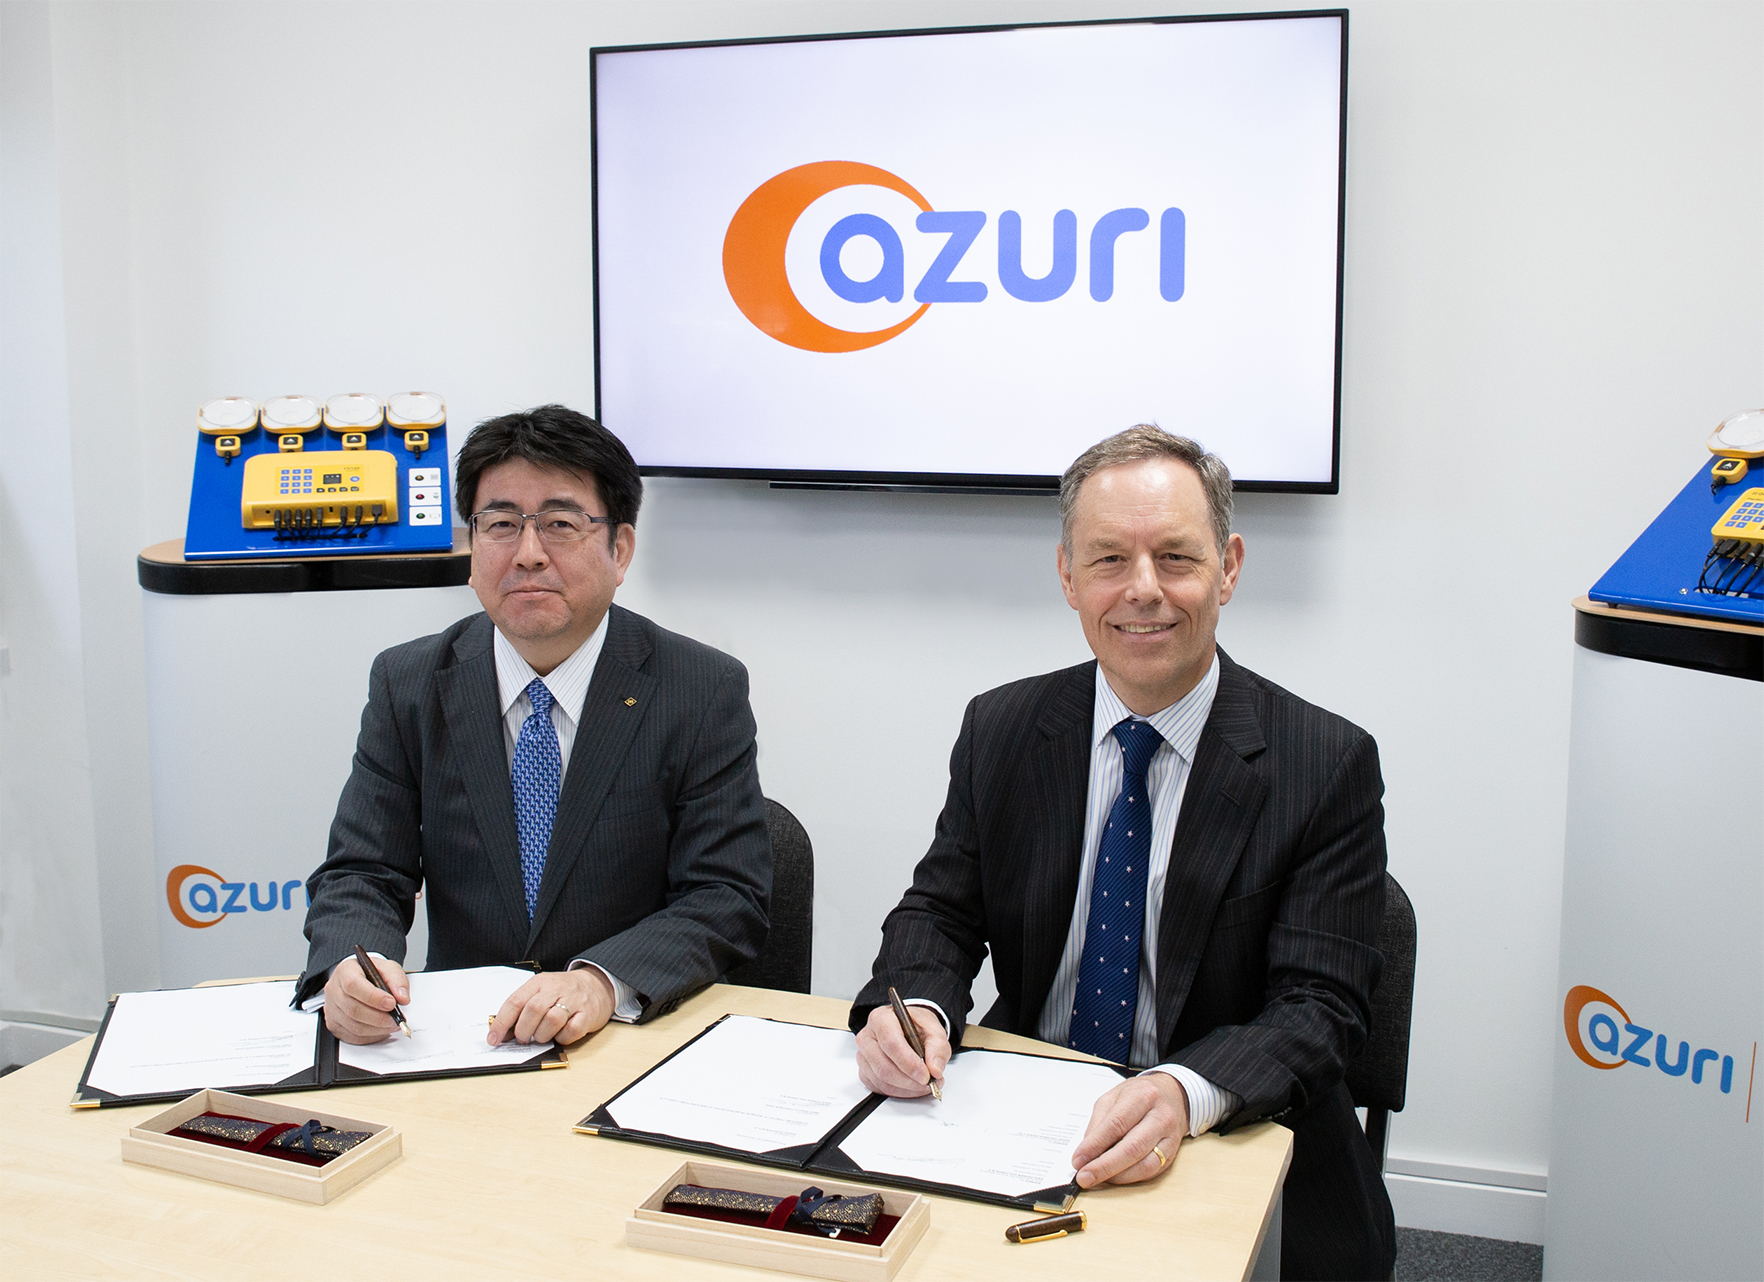 Azuri announces $26 million equity investment targeted at Africa expansion